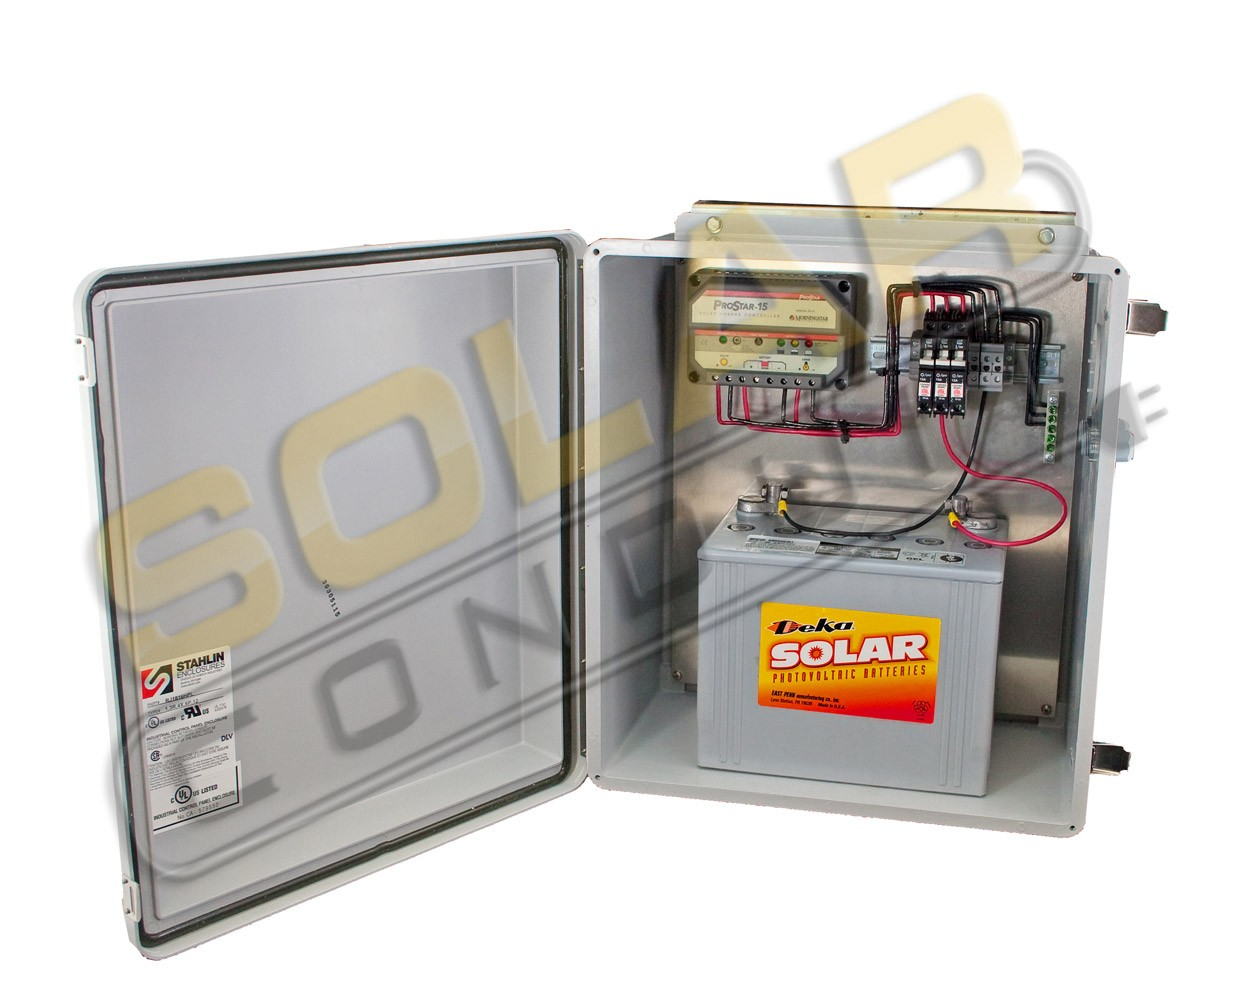 REMOTE POWER SYSTEM - 15 AMP, 12 VDC CHARGE CONTROLLER / 97 AH BATTERY / 85 WATT PV MODULE, KSOL POWER